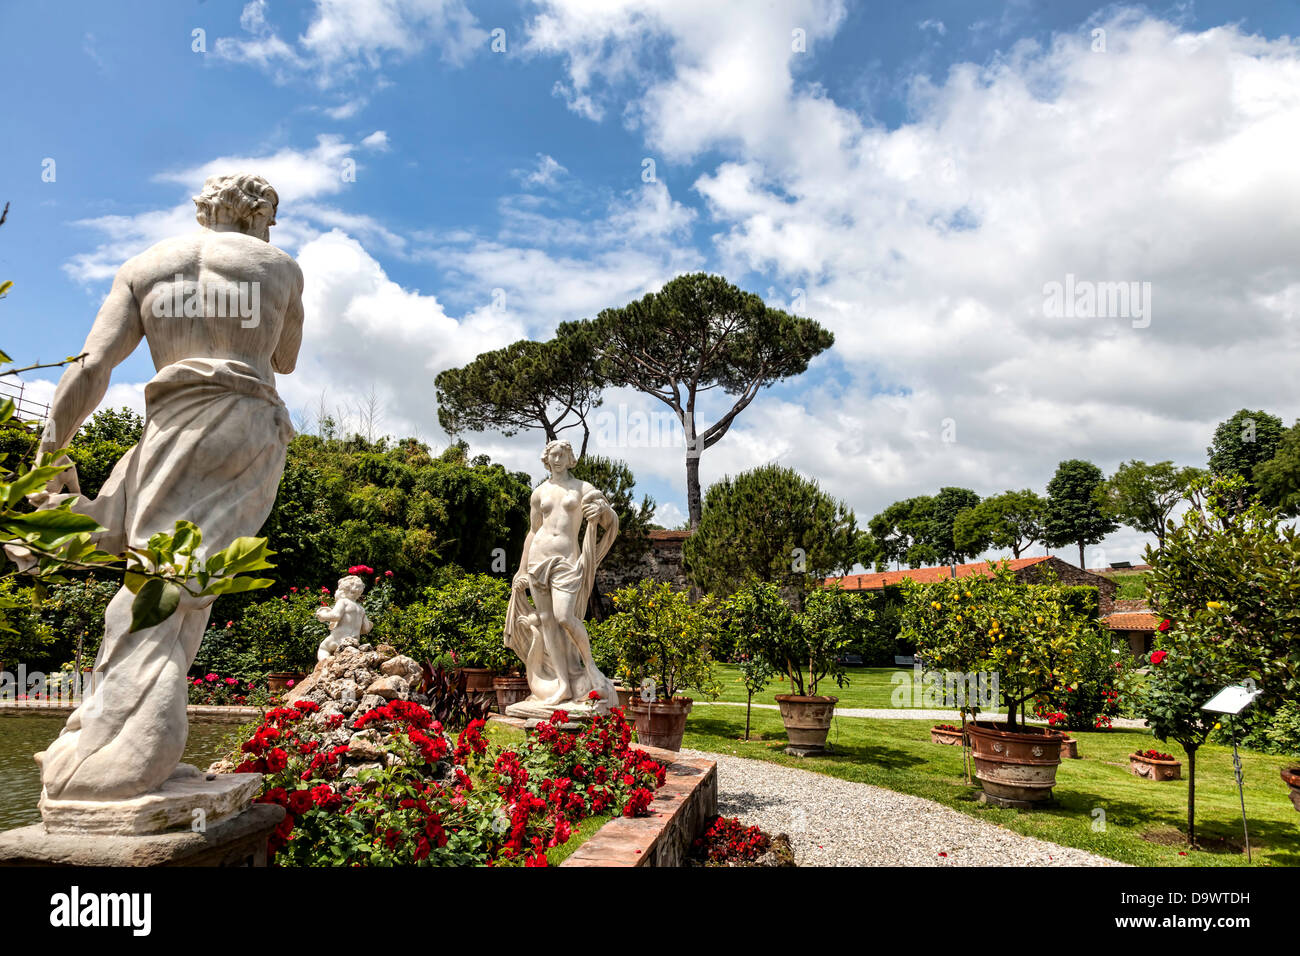 Palazzo Pfanner gardens in Lucca, Tuscany - Stock Image